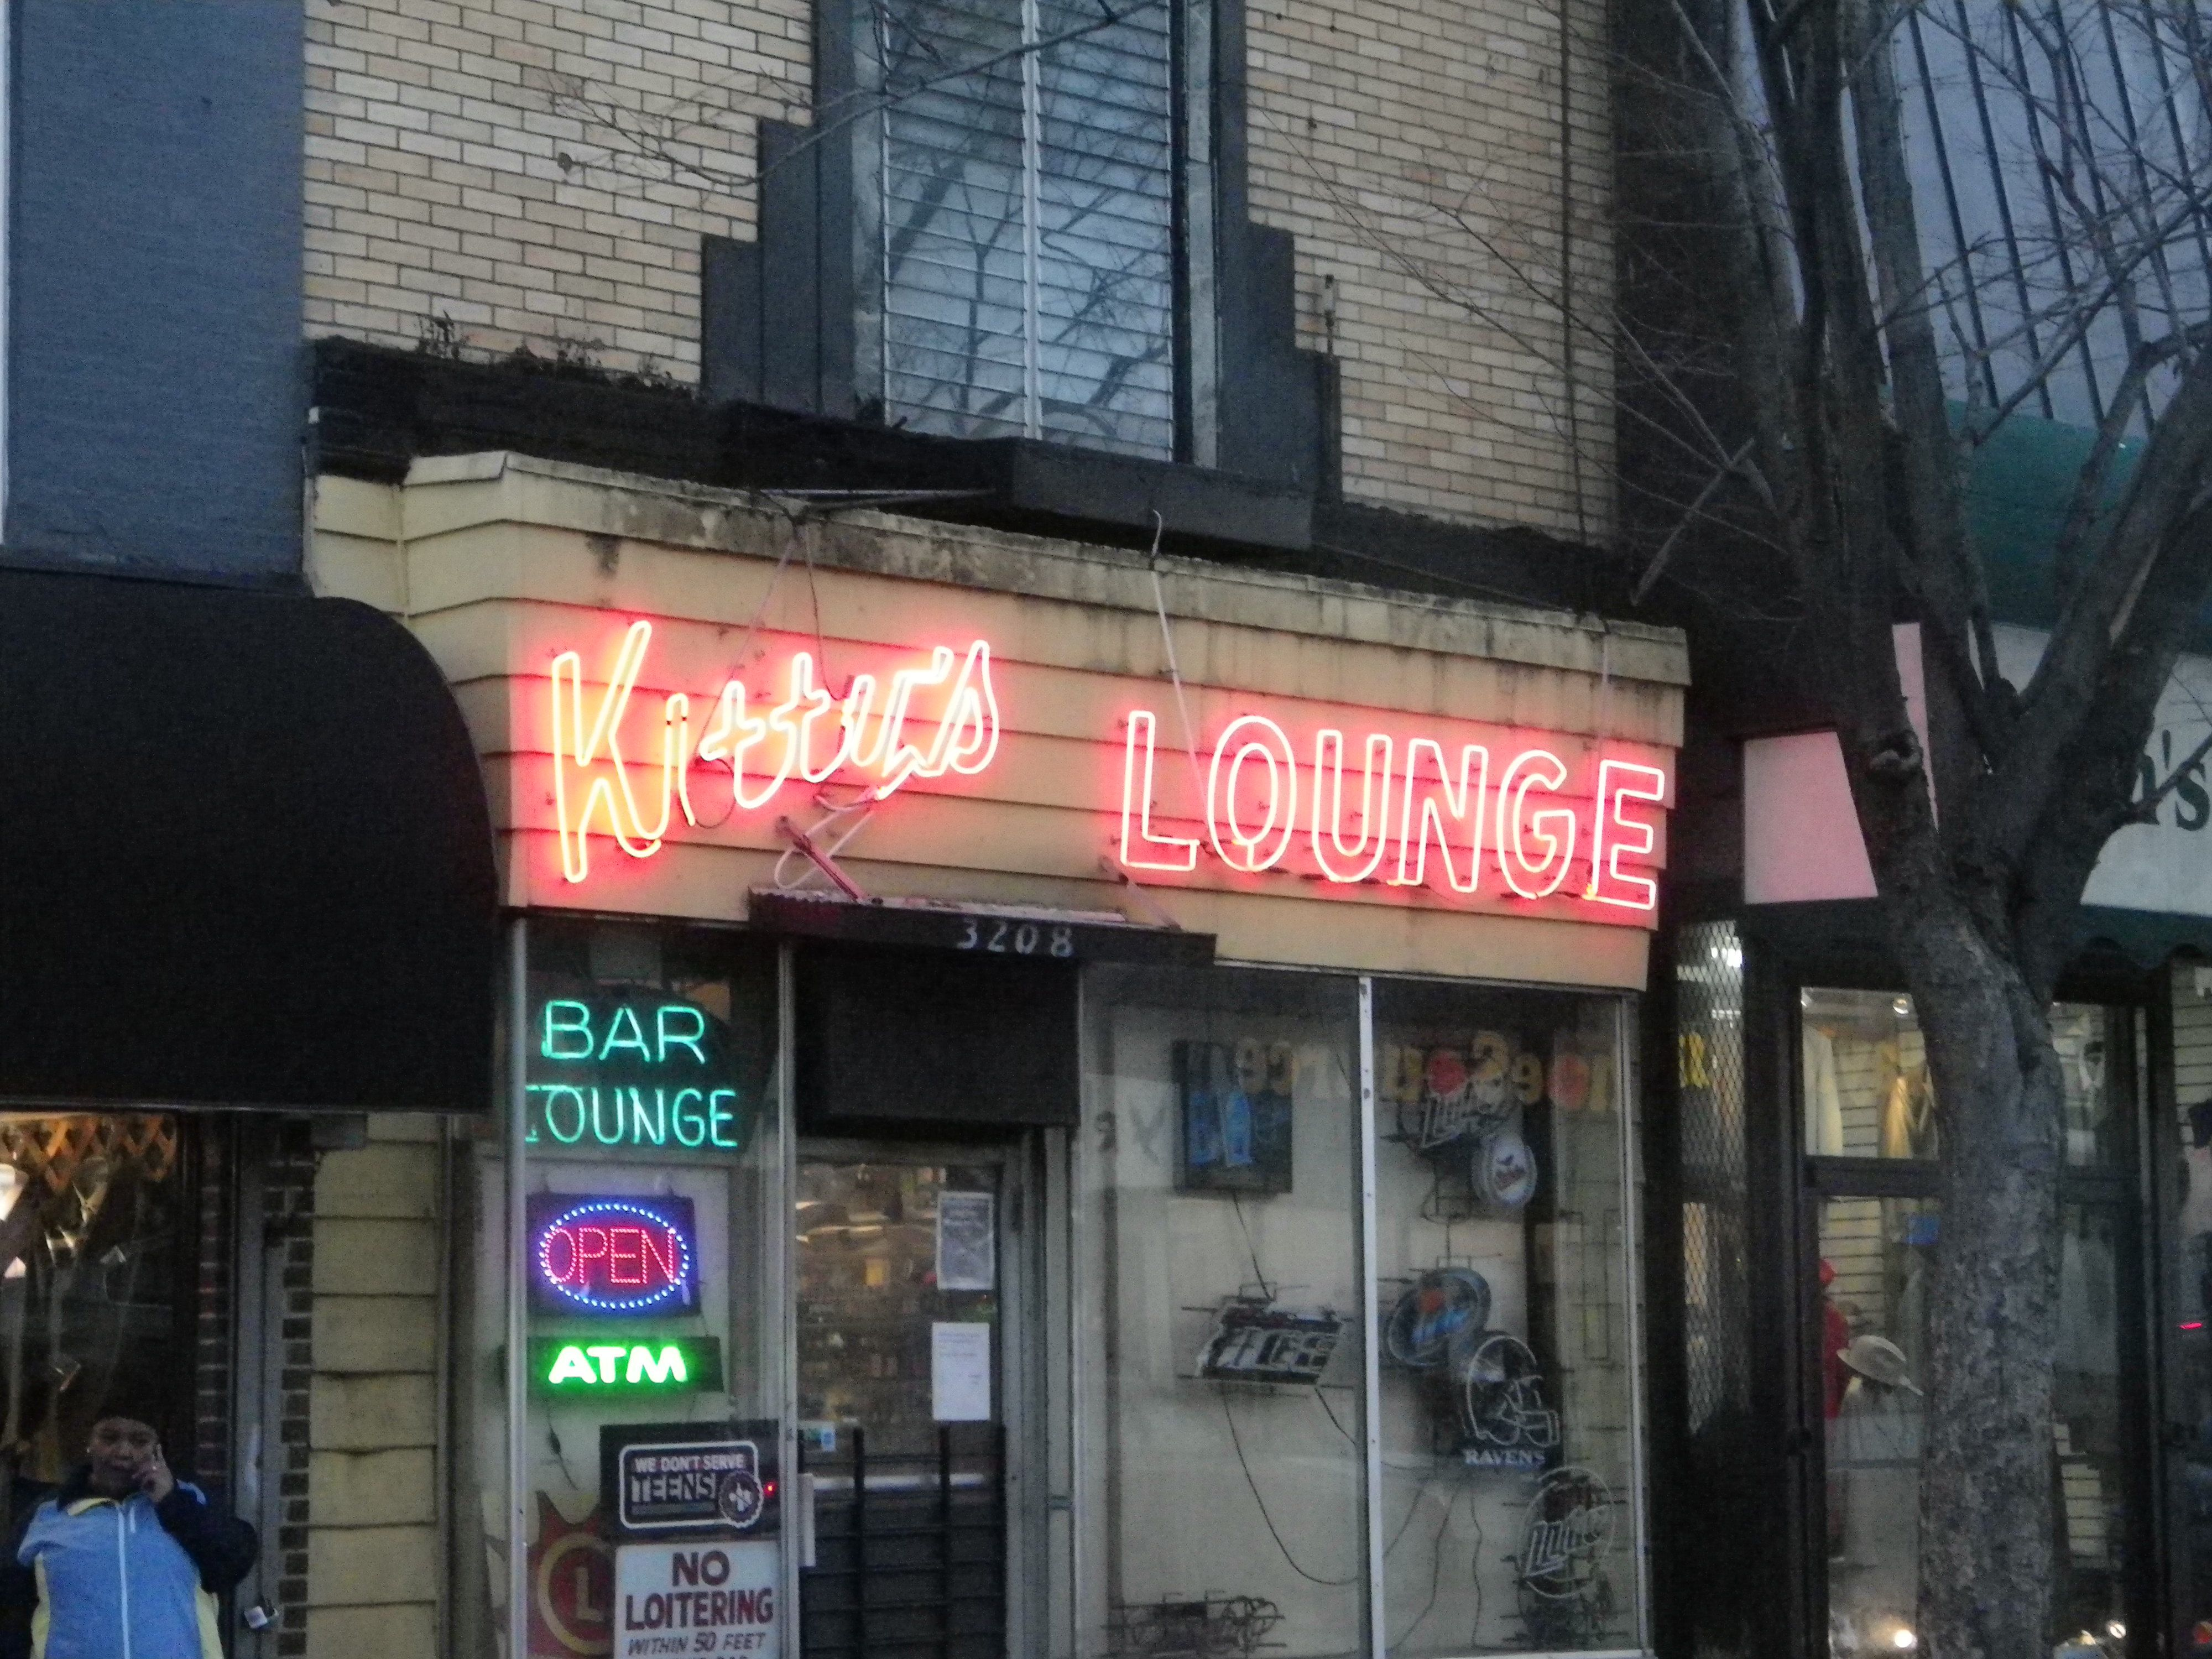 Kitty S Lounge 3208 Greenmount Ave 21218 Year Open Unknown